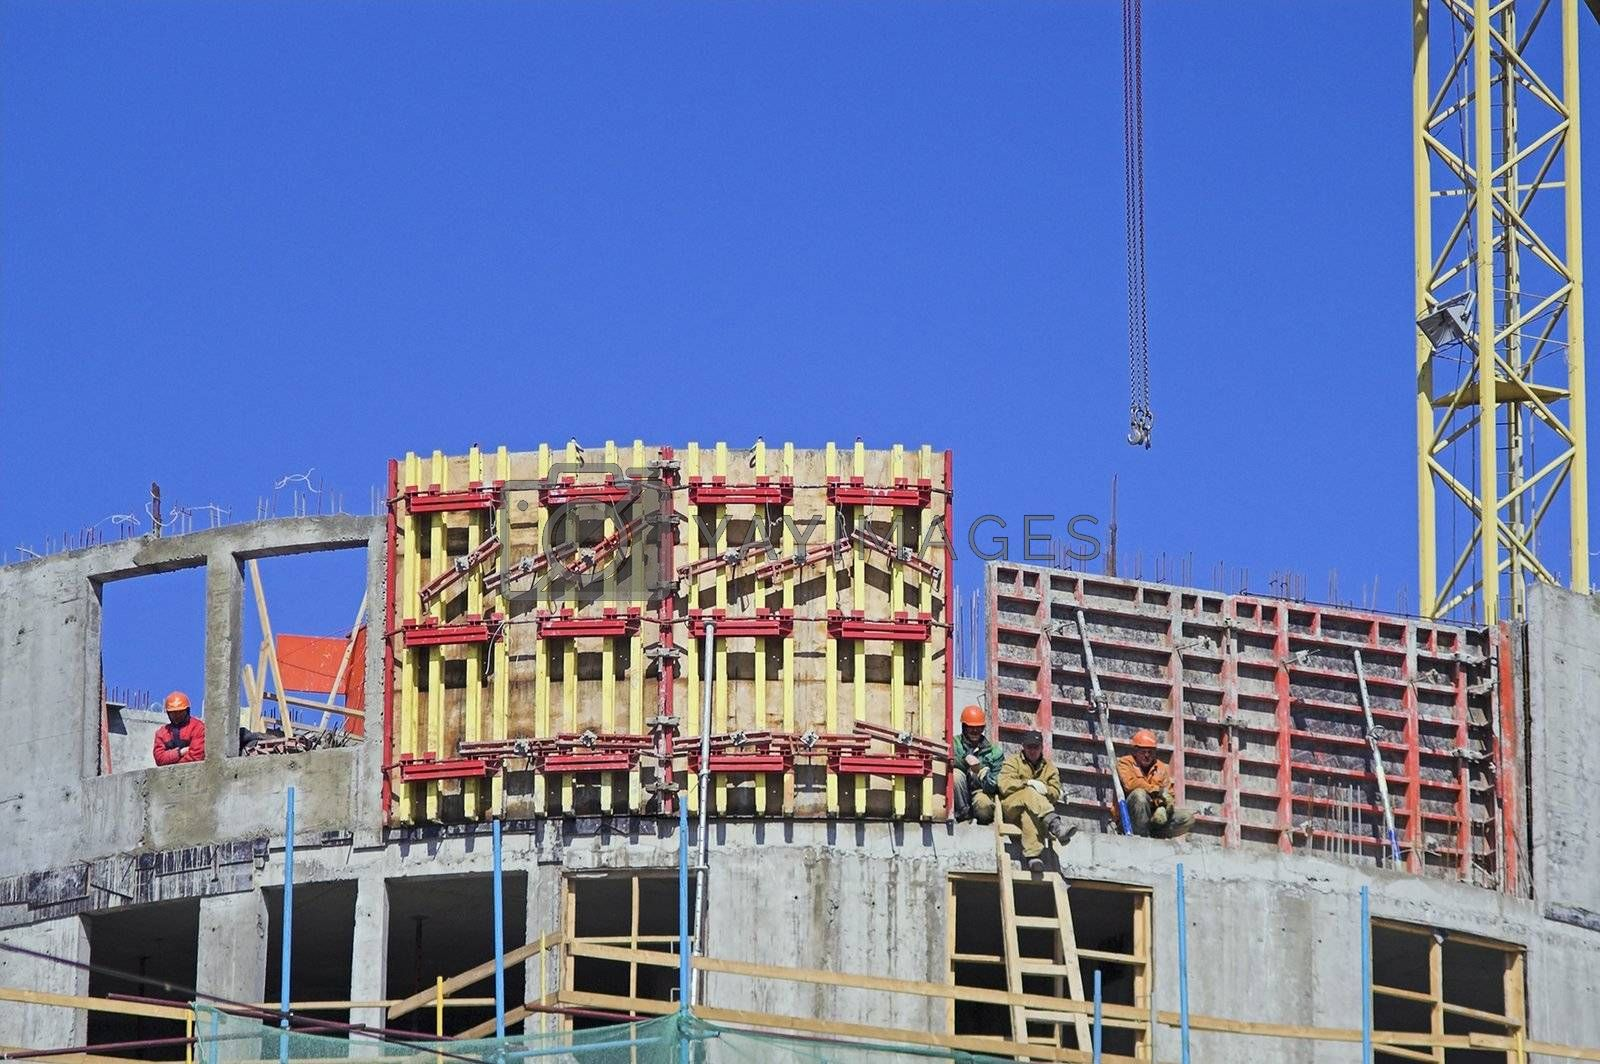 Workers sitting on building structures on construction site